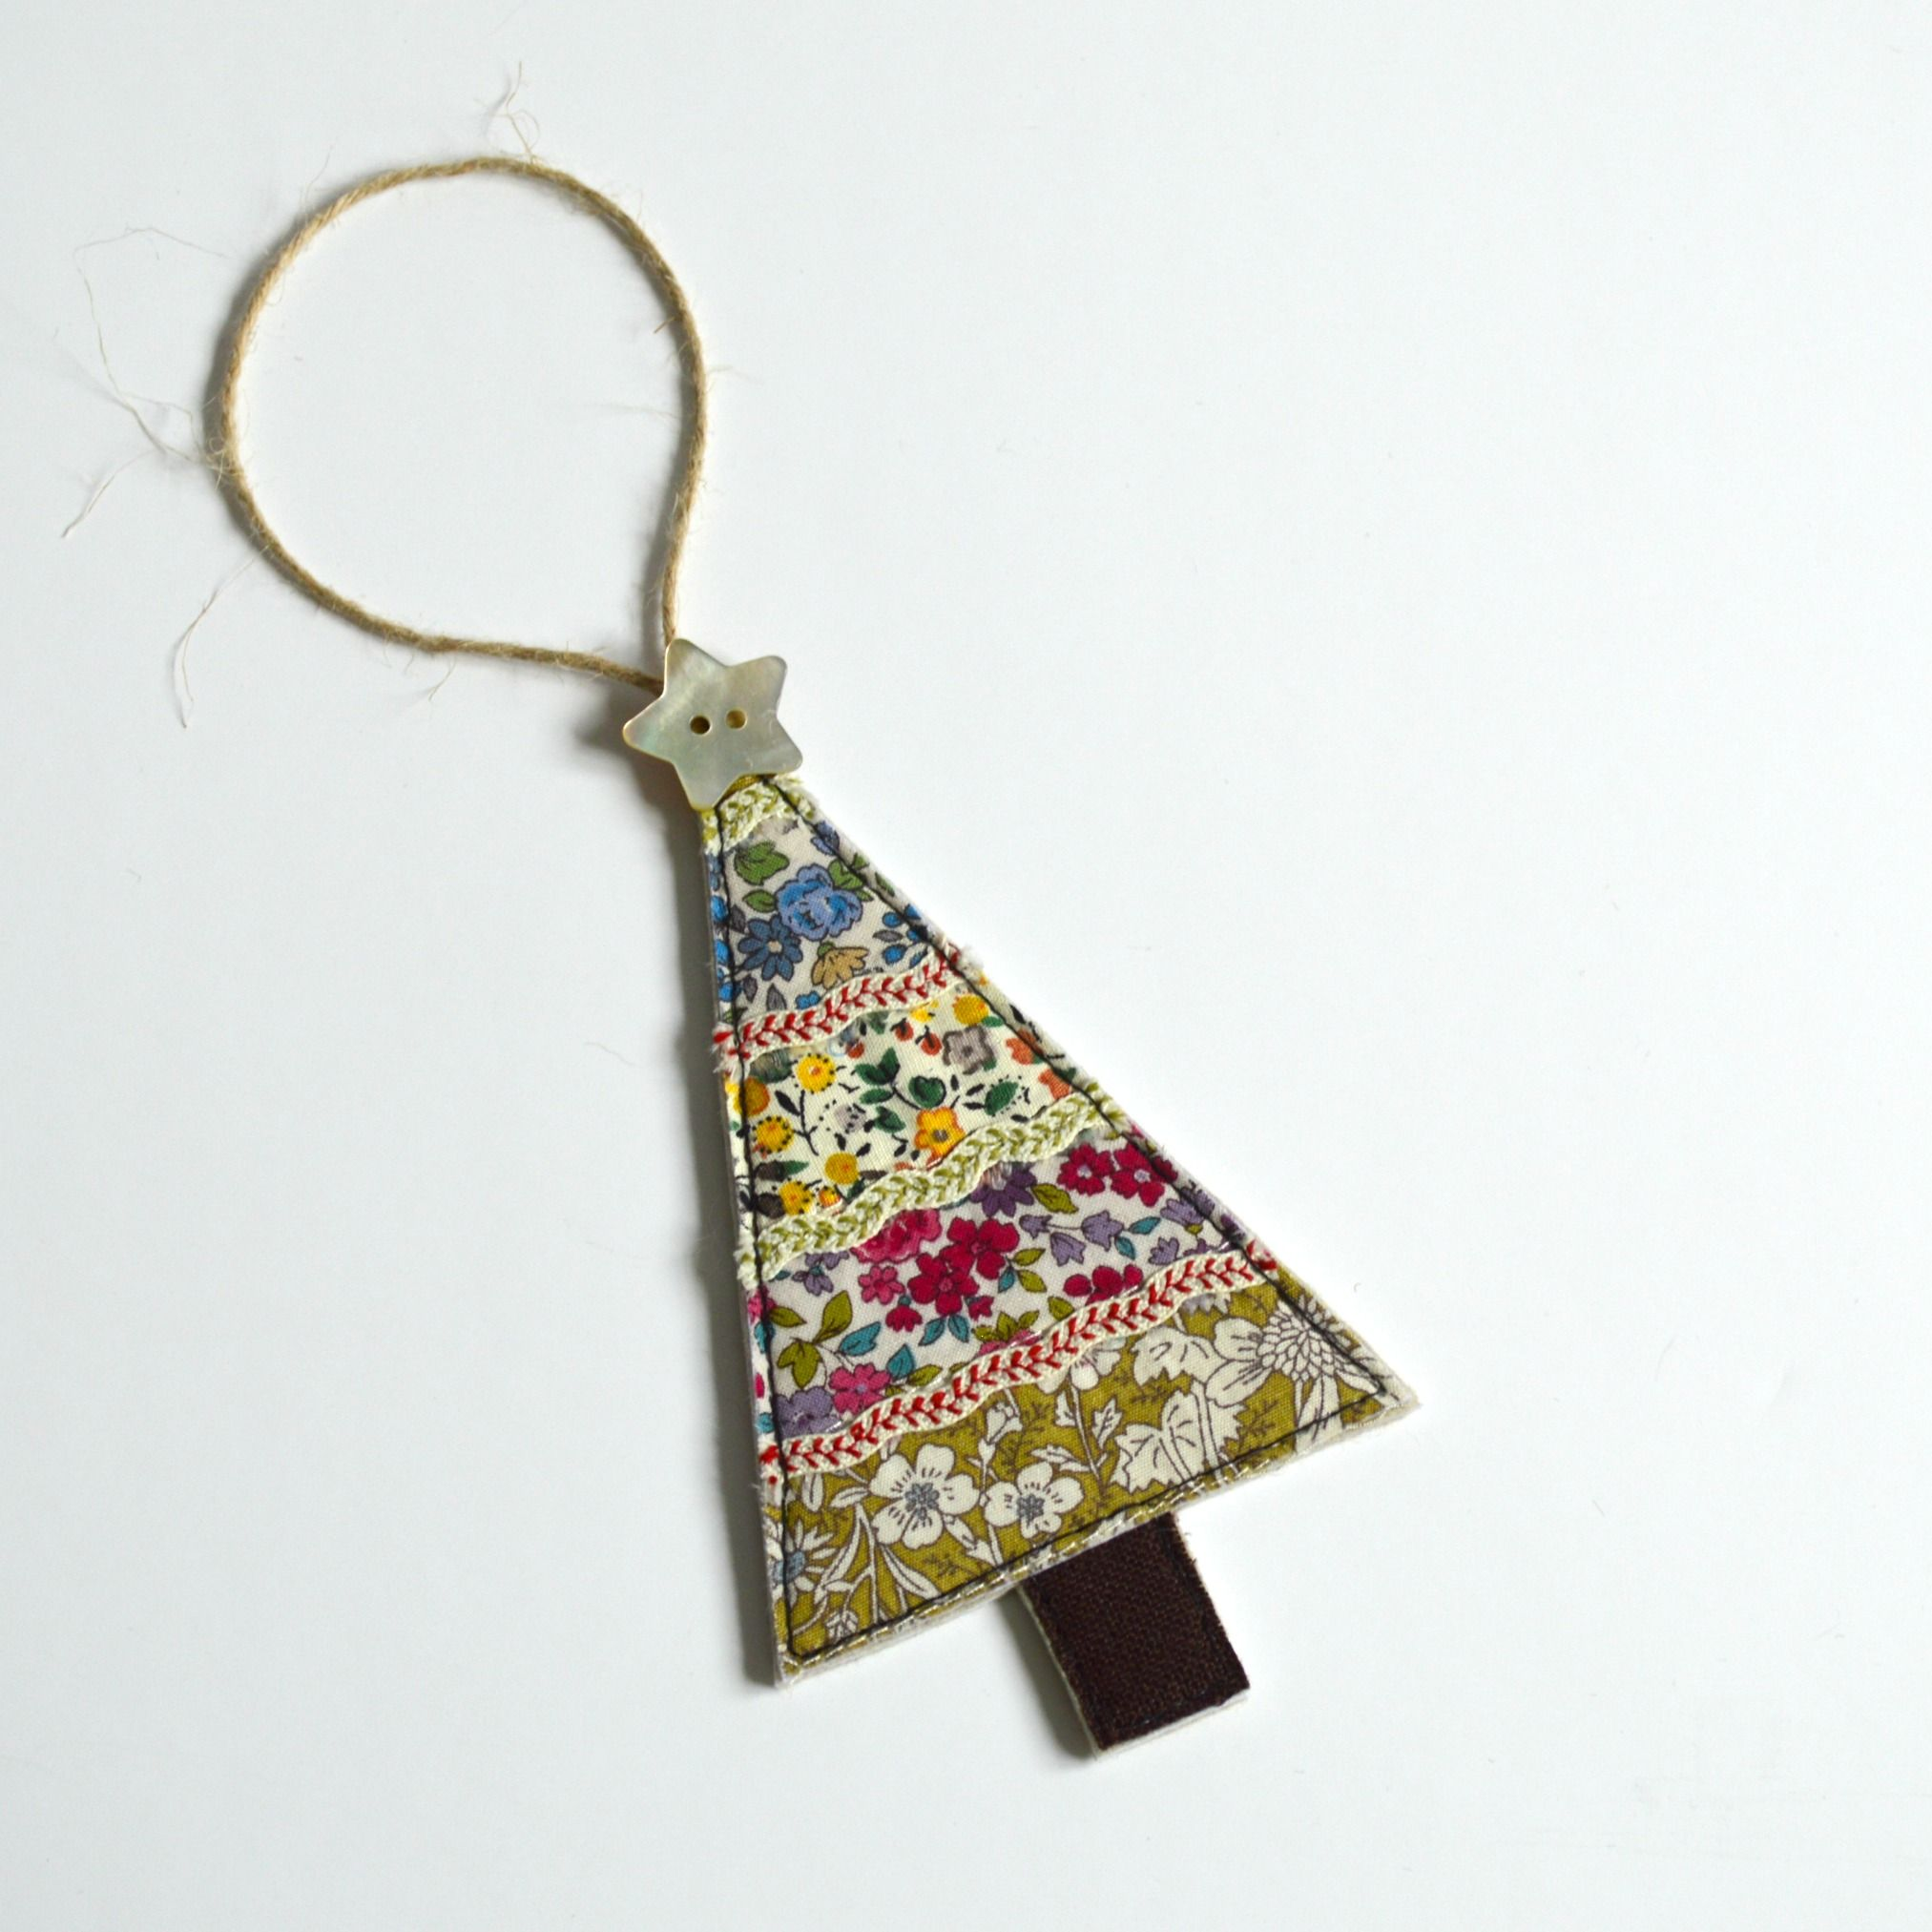 Embroidered fabric Christmas tree hanging decoration handmade by Stitch Galore